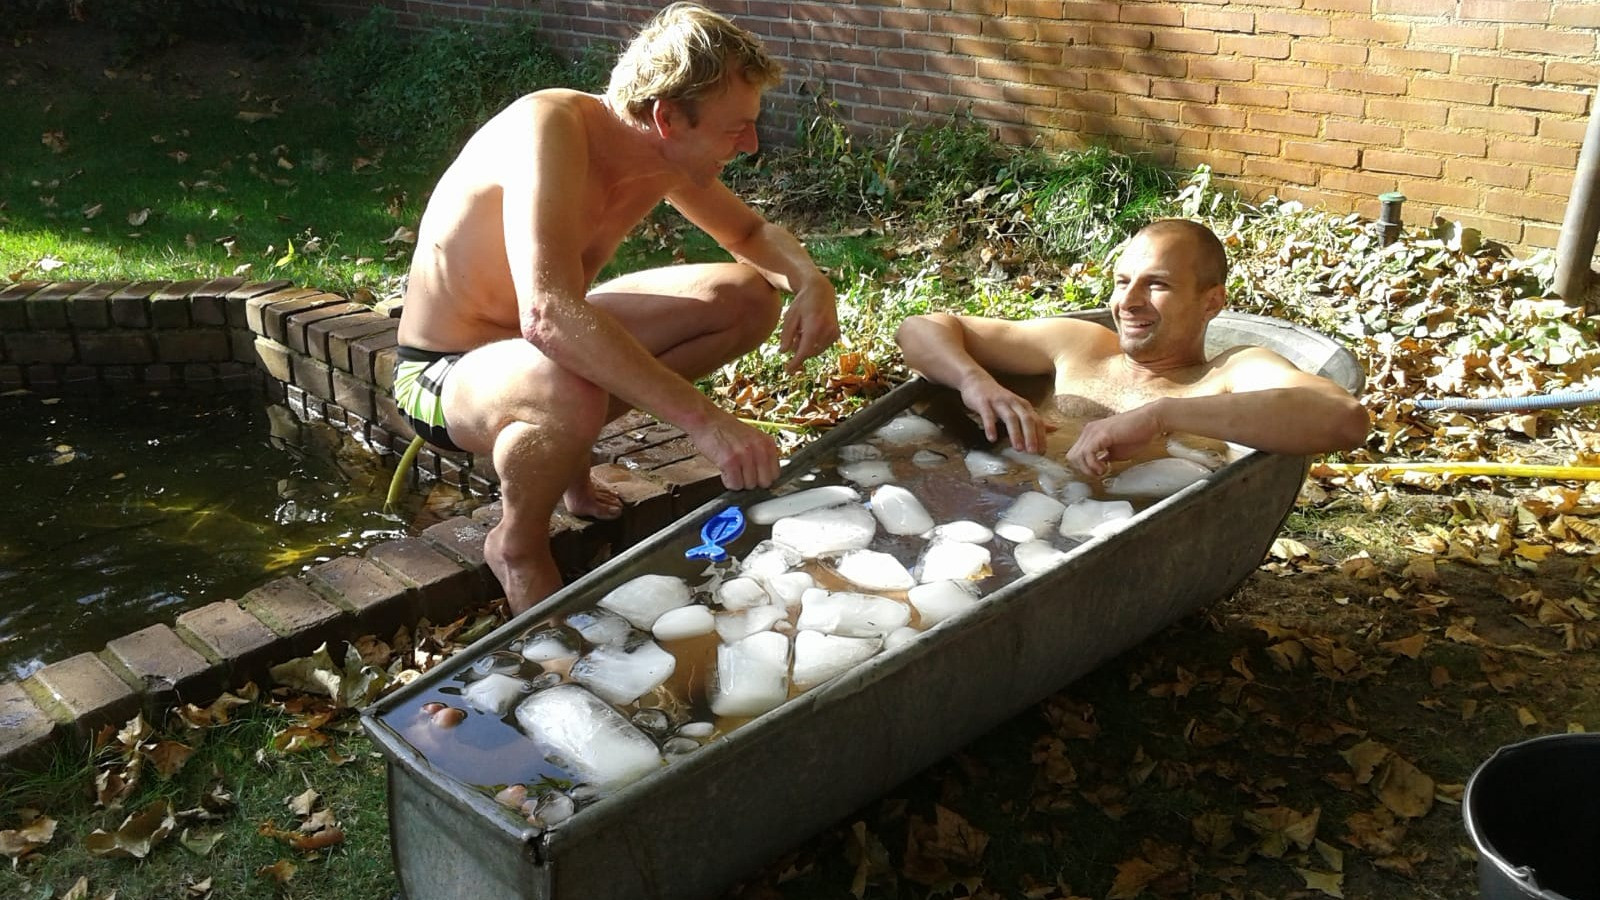 Image 25 of 25 - Experience the Wim Hof Method to get an impression of  at